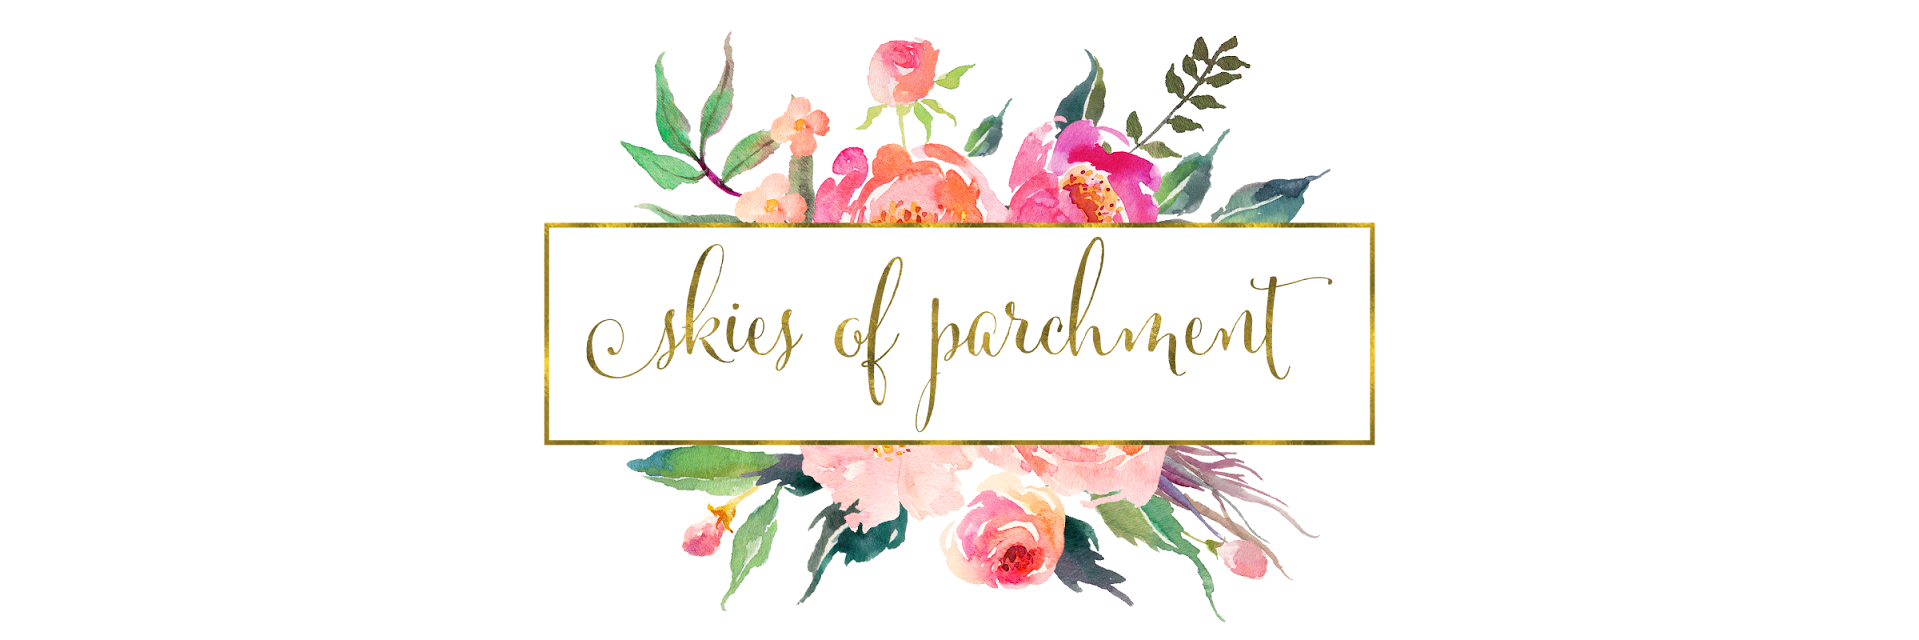 Skies of Parchment